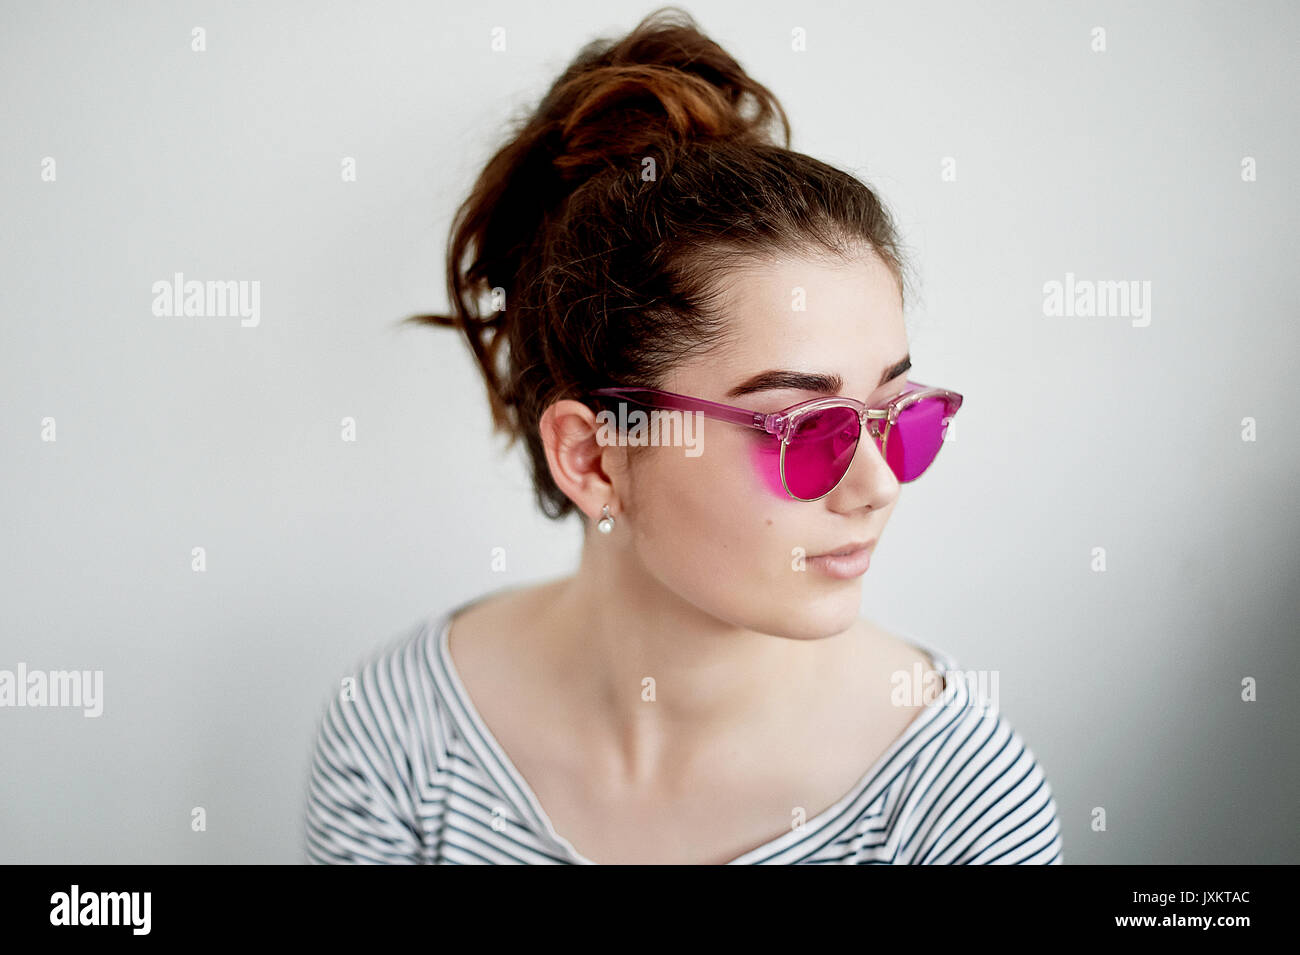 The girl smiles happily in the pink glasses.A naive view of the world in the transition to adulthood - Stock Image